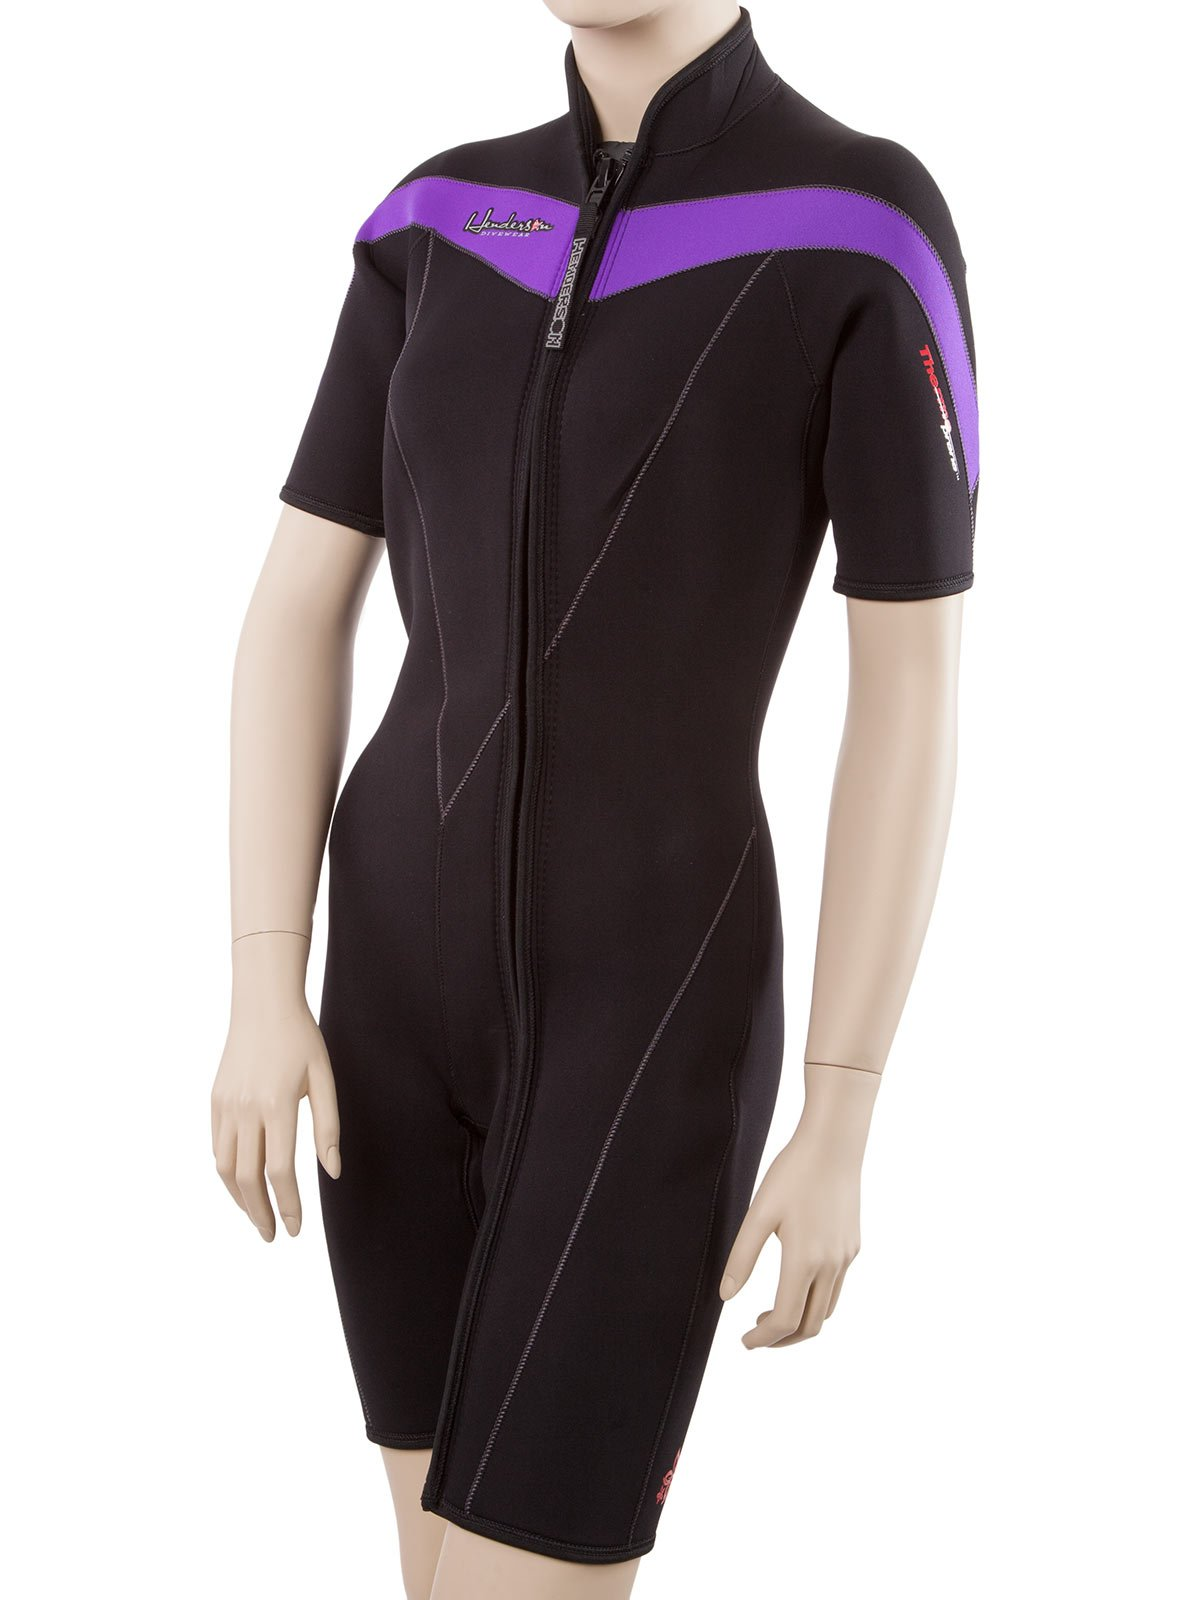 Henderson Thermoprene 3mm Womens Front Zip Wetsuit 18 Tall Black/Dark Purple by Henderson